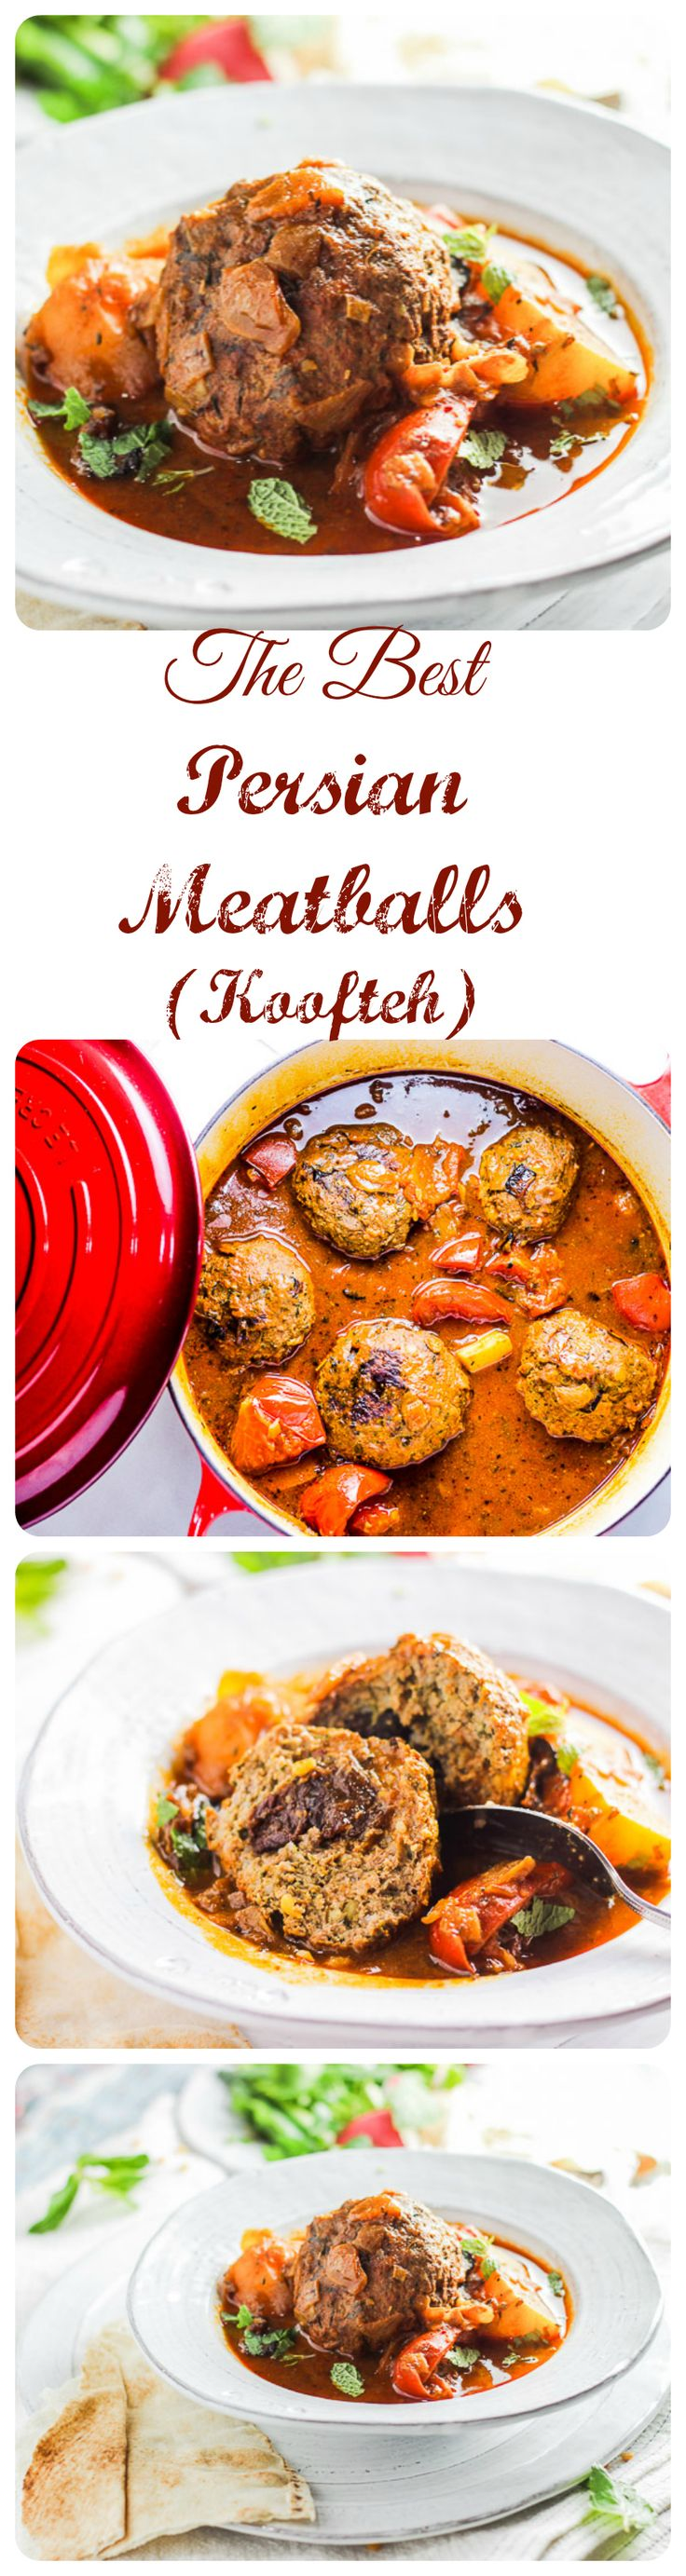 This recipe for Persian Meatballs (aka Koofteh) is passed down and the best I've ever tasted. I can't even begin to say how delicious it is. Divine! #meatballs #koofteh